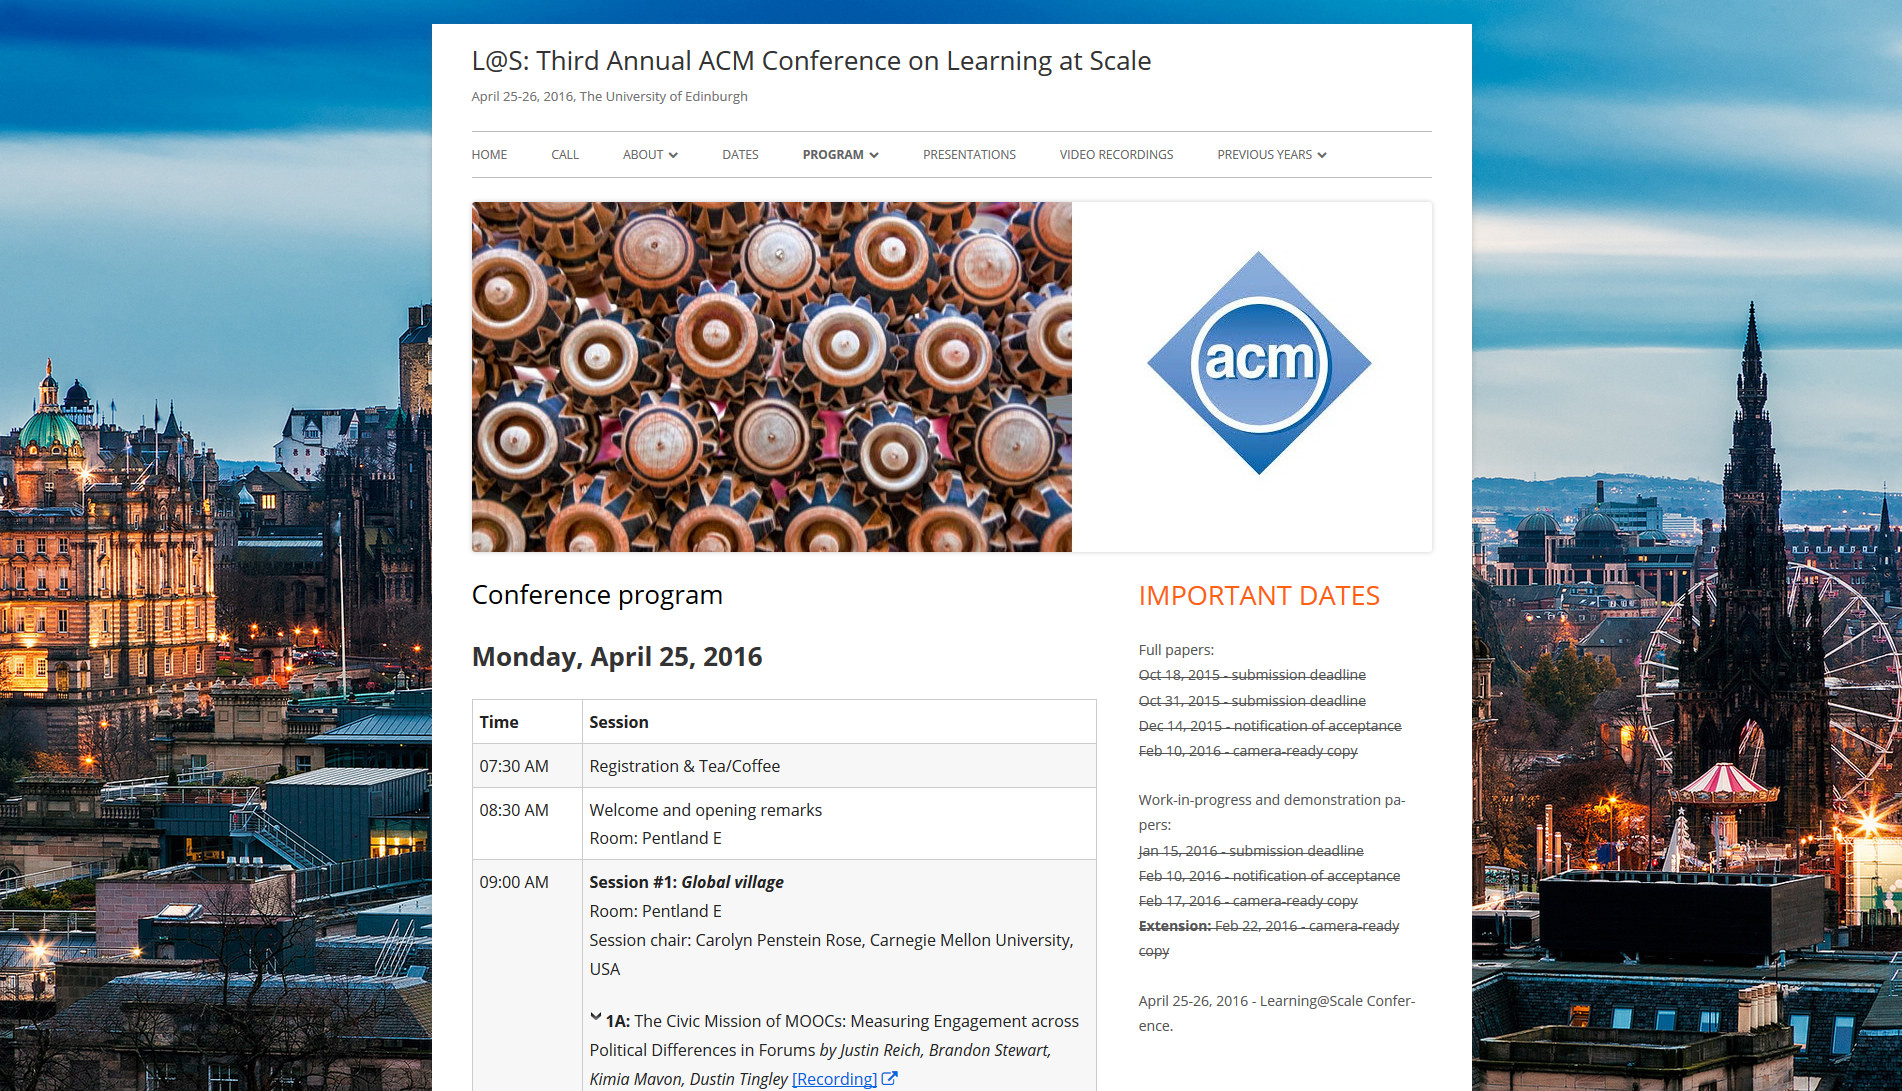 learningatscale-acm.org - las2016